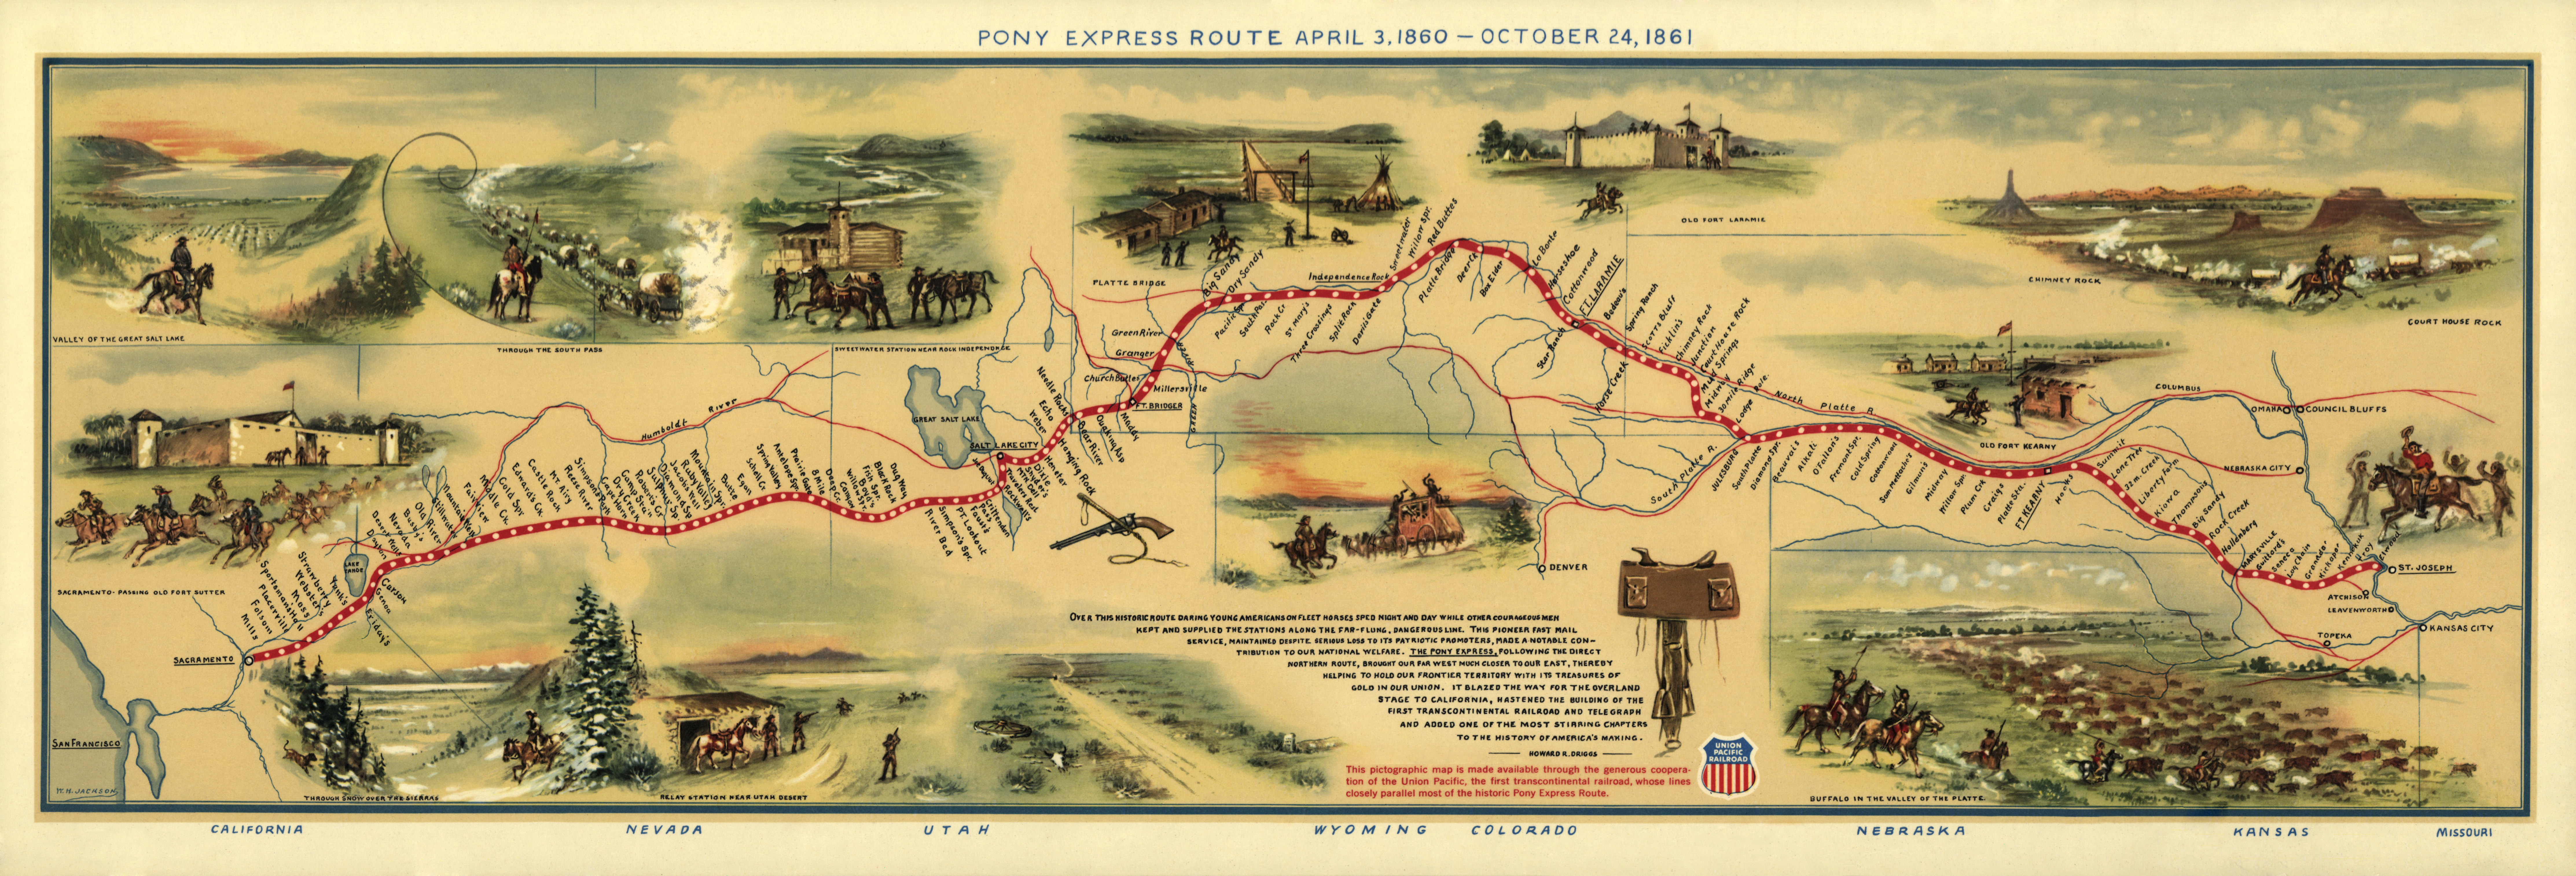 Map of the Pony Express Route in